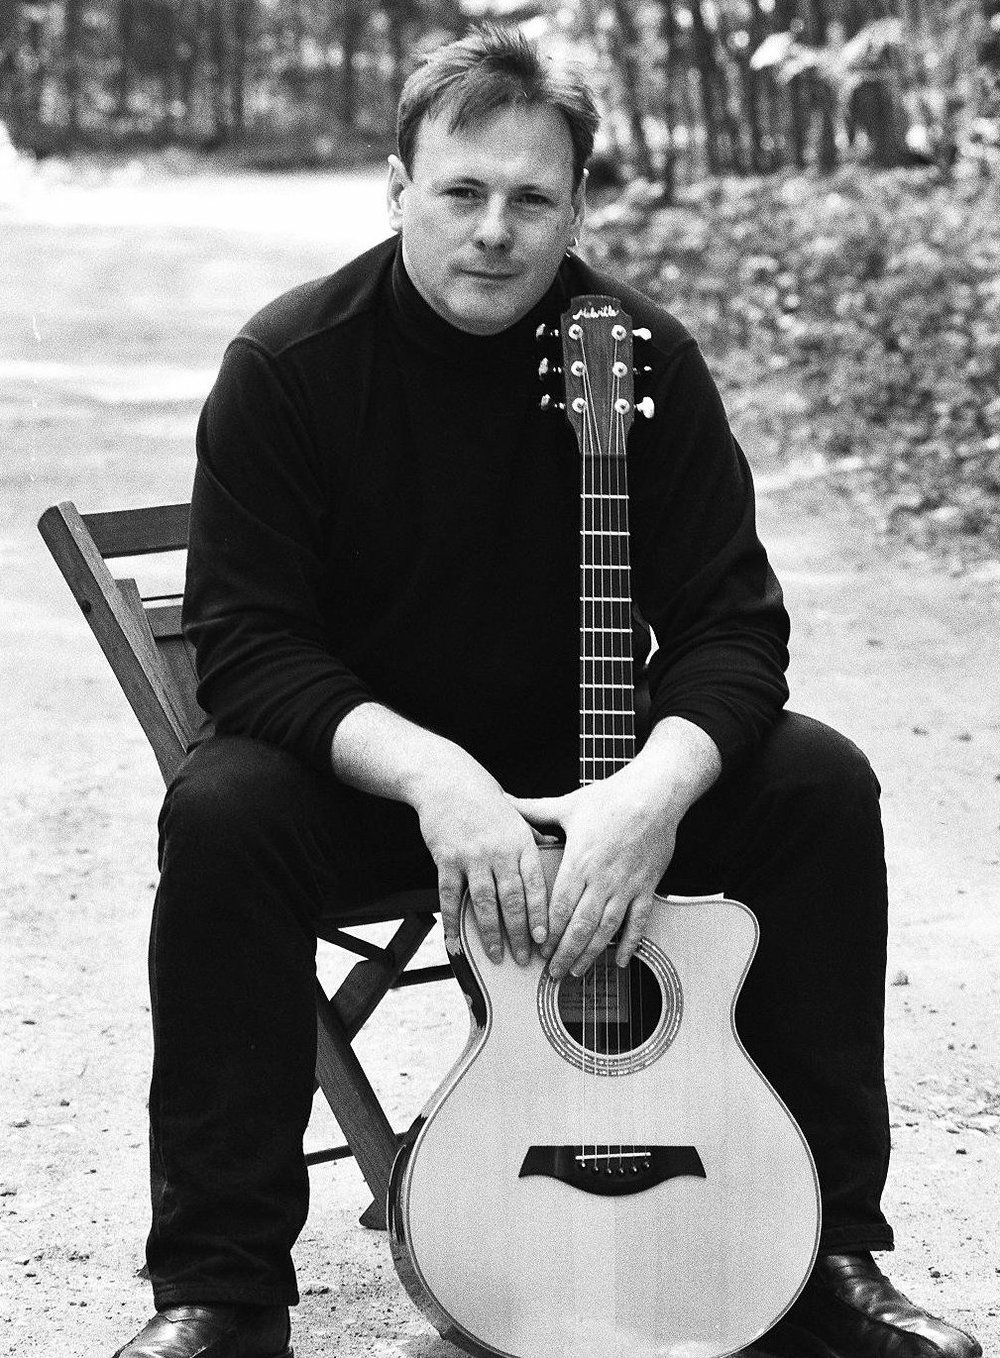 Guitarist Tony McManus performs today for the Argenta Acoustic Music Series.